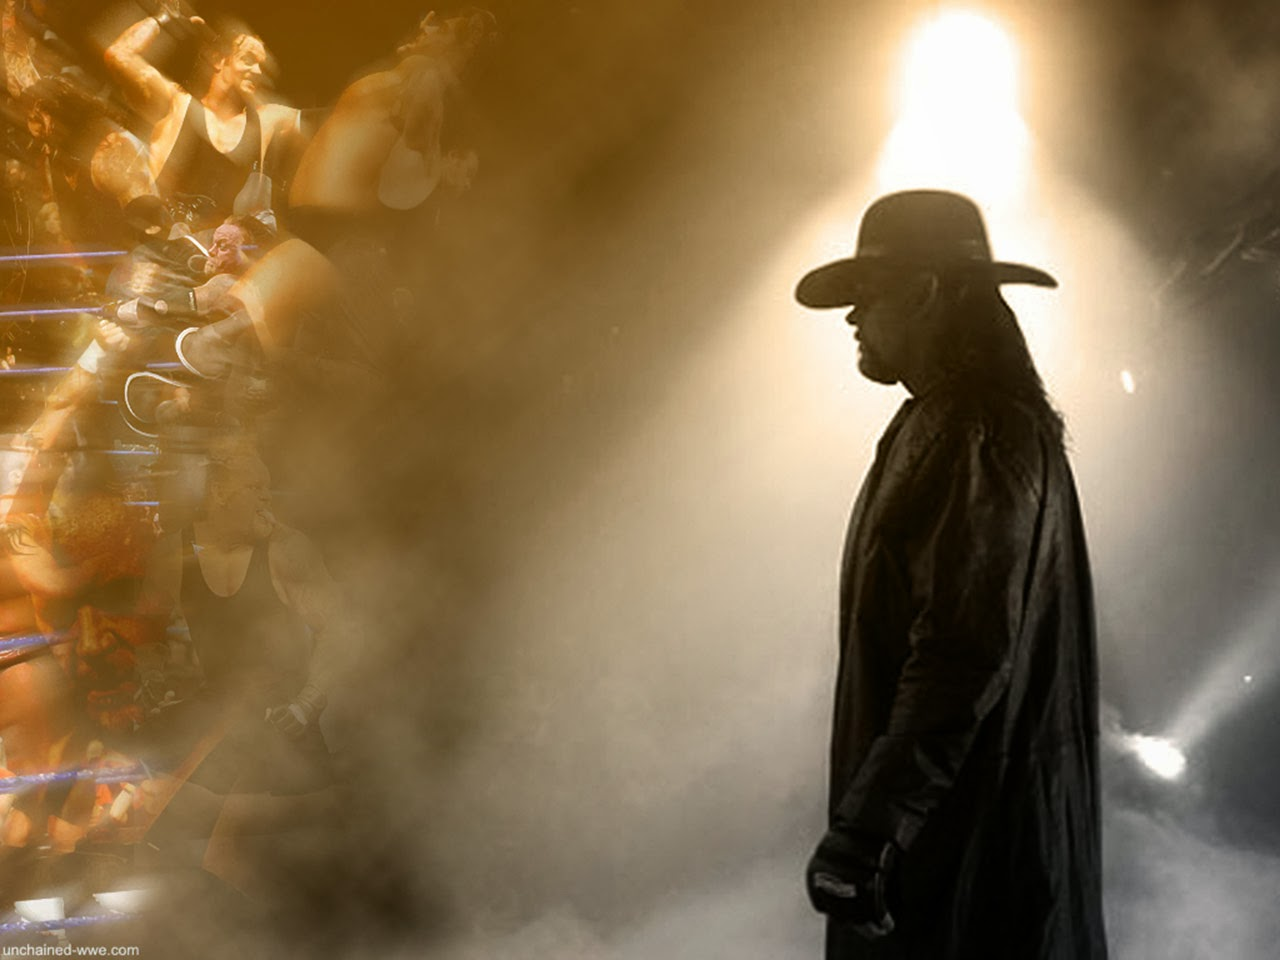 THE UNDERTAKER HD WALLPAPERS | FREE HD WALLPAPERS